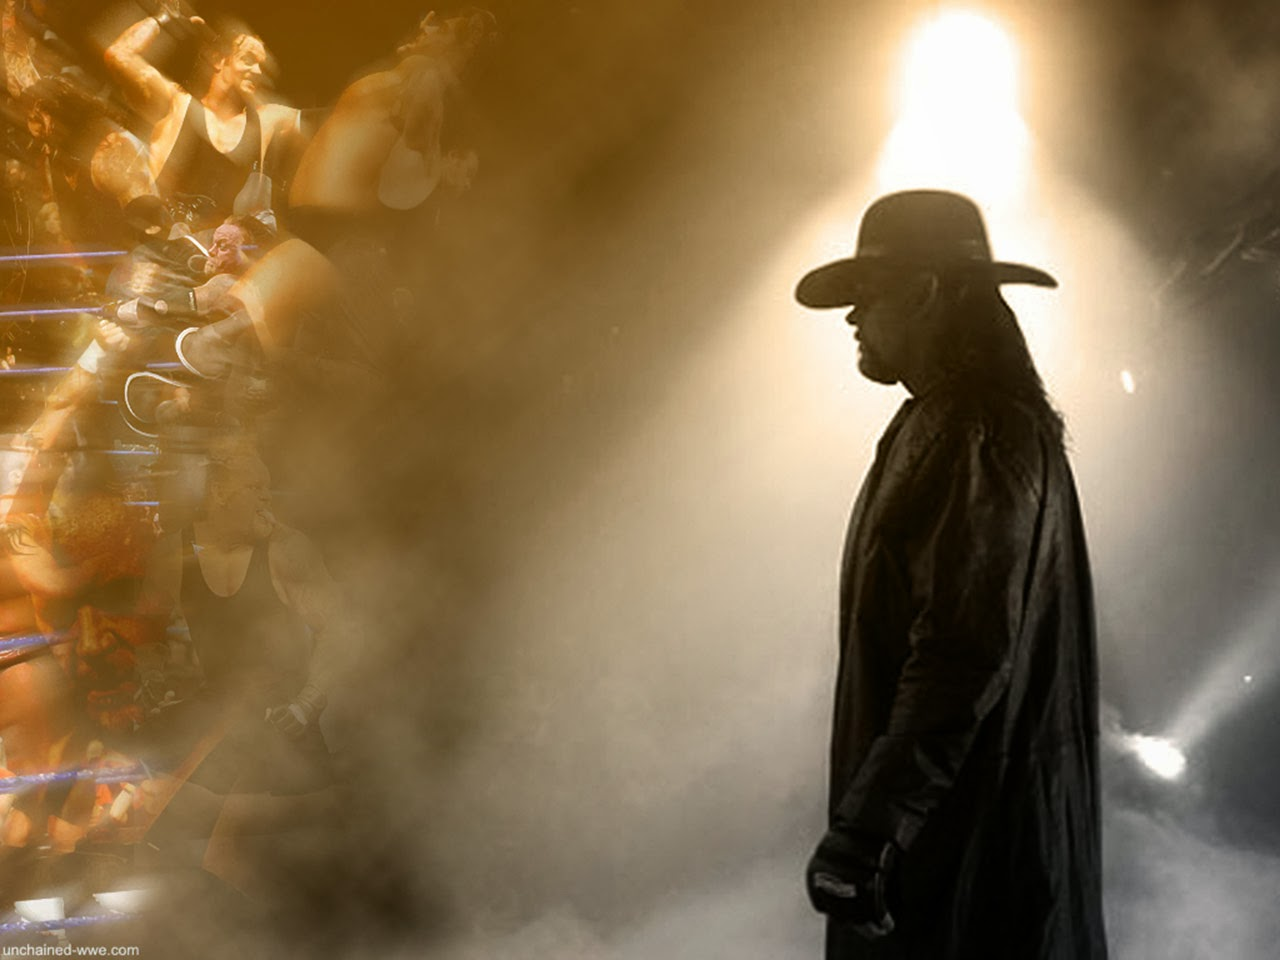 THE UNDERTAKER HD WALLPAPERS | FREE HD WALLPAPERS